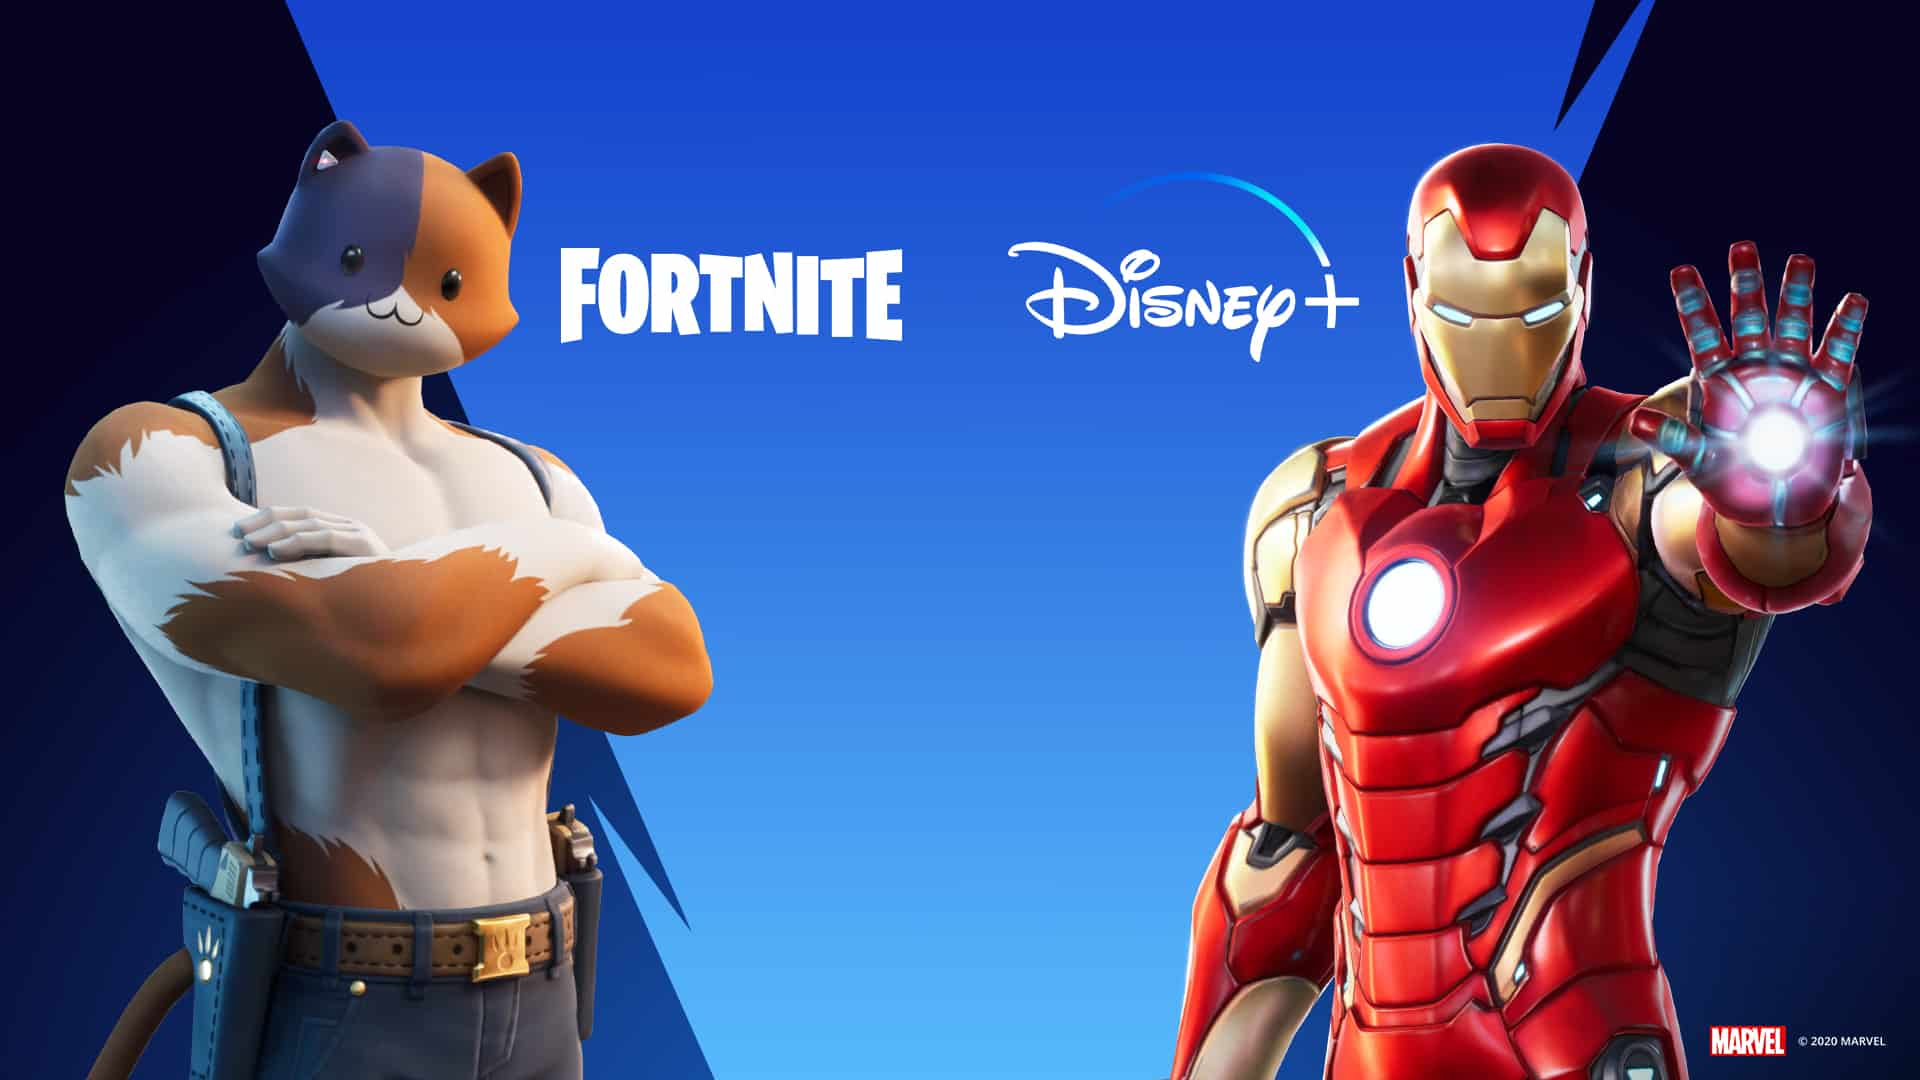 Fortnite Disney